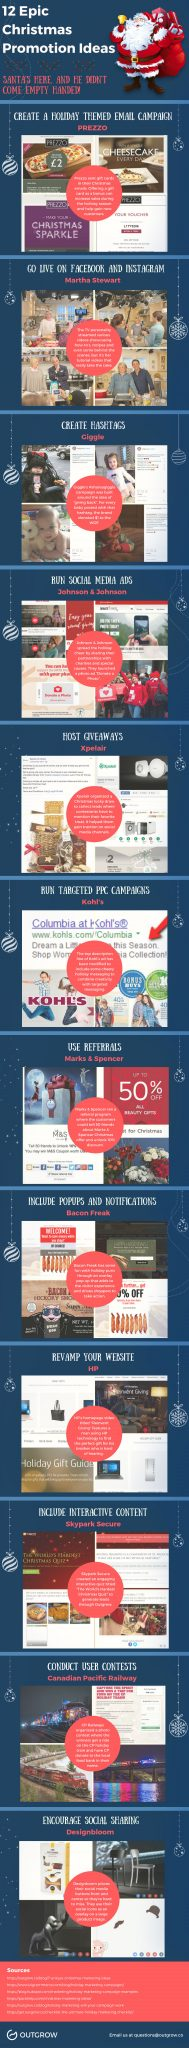 12 christmas promotional ideas infographic final